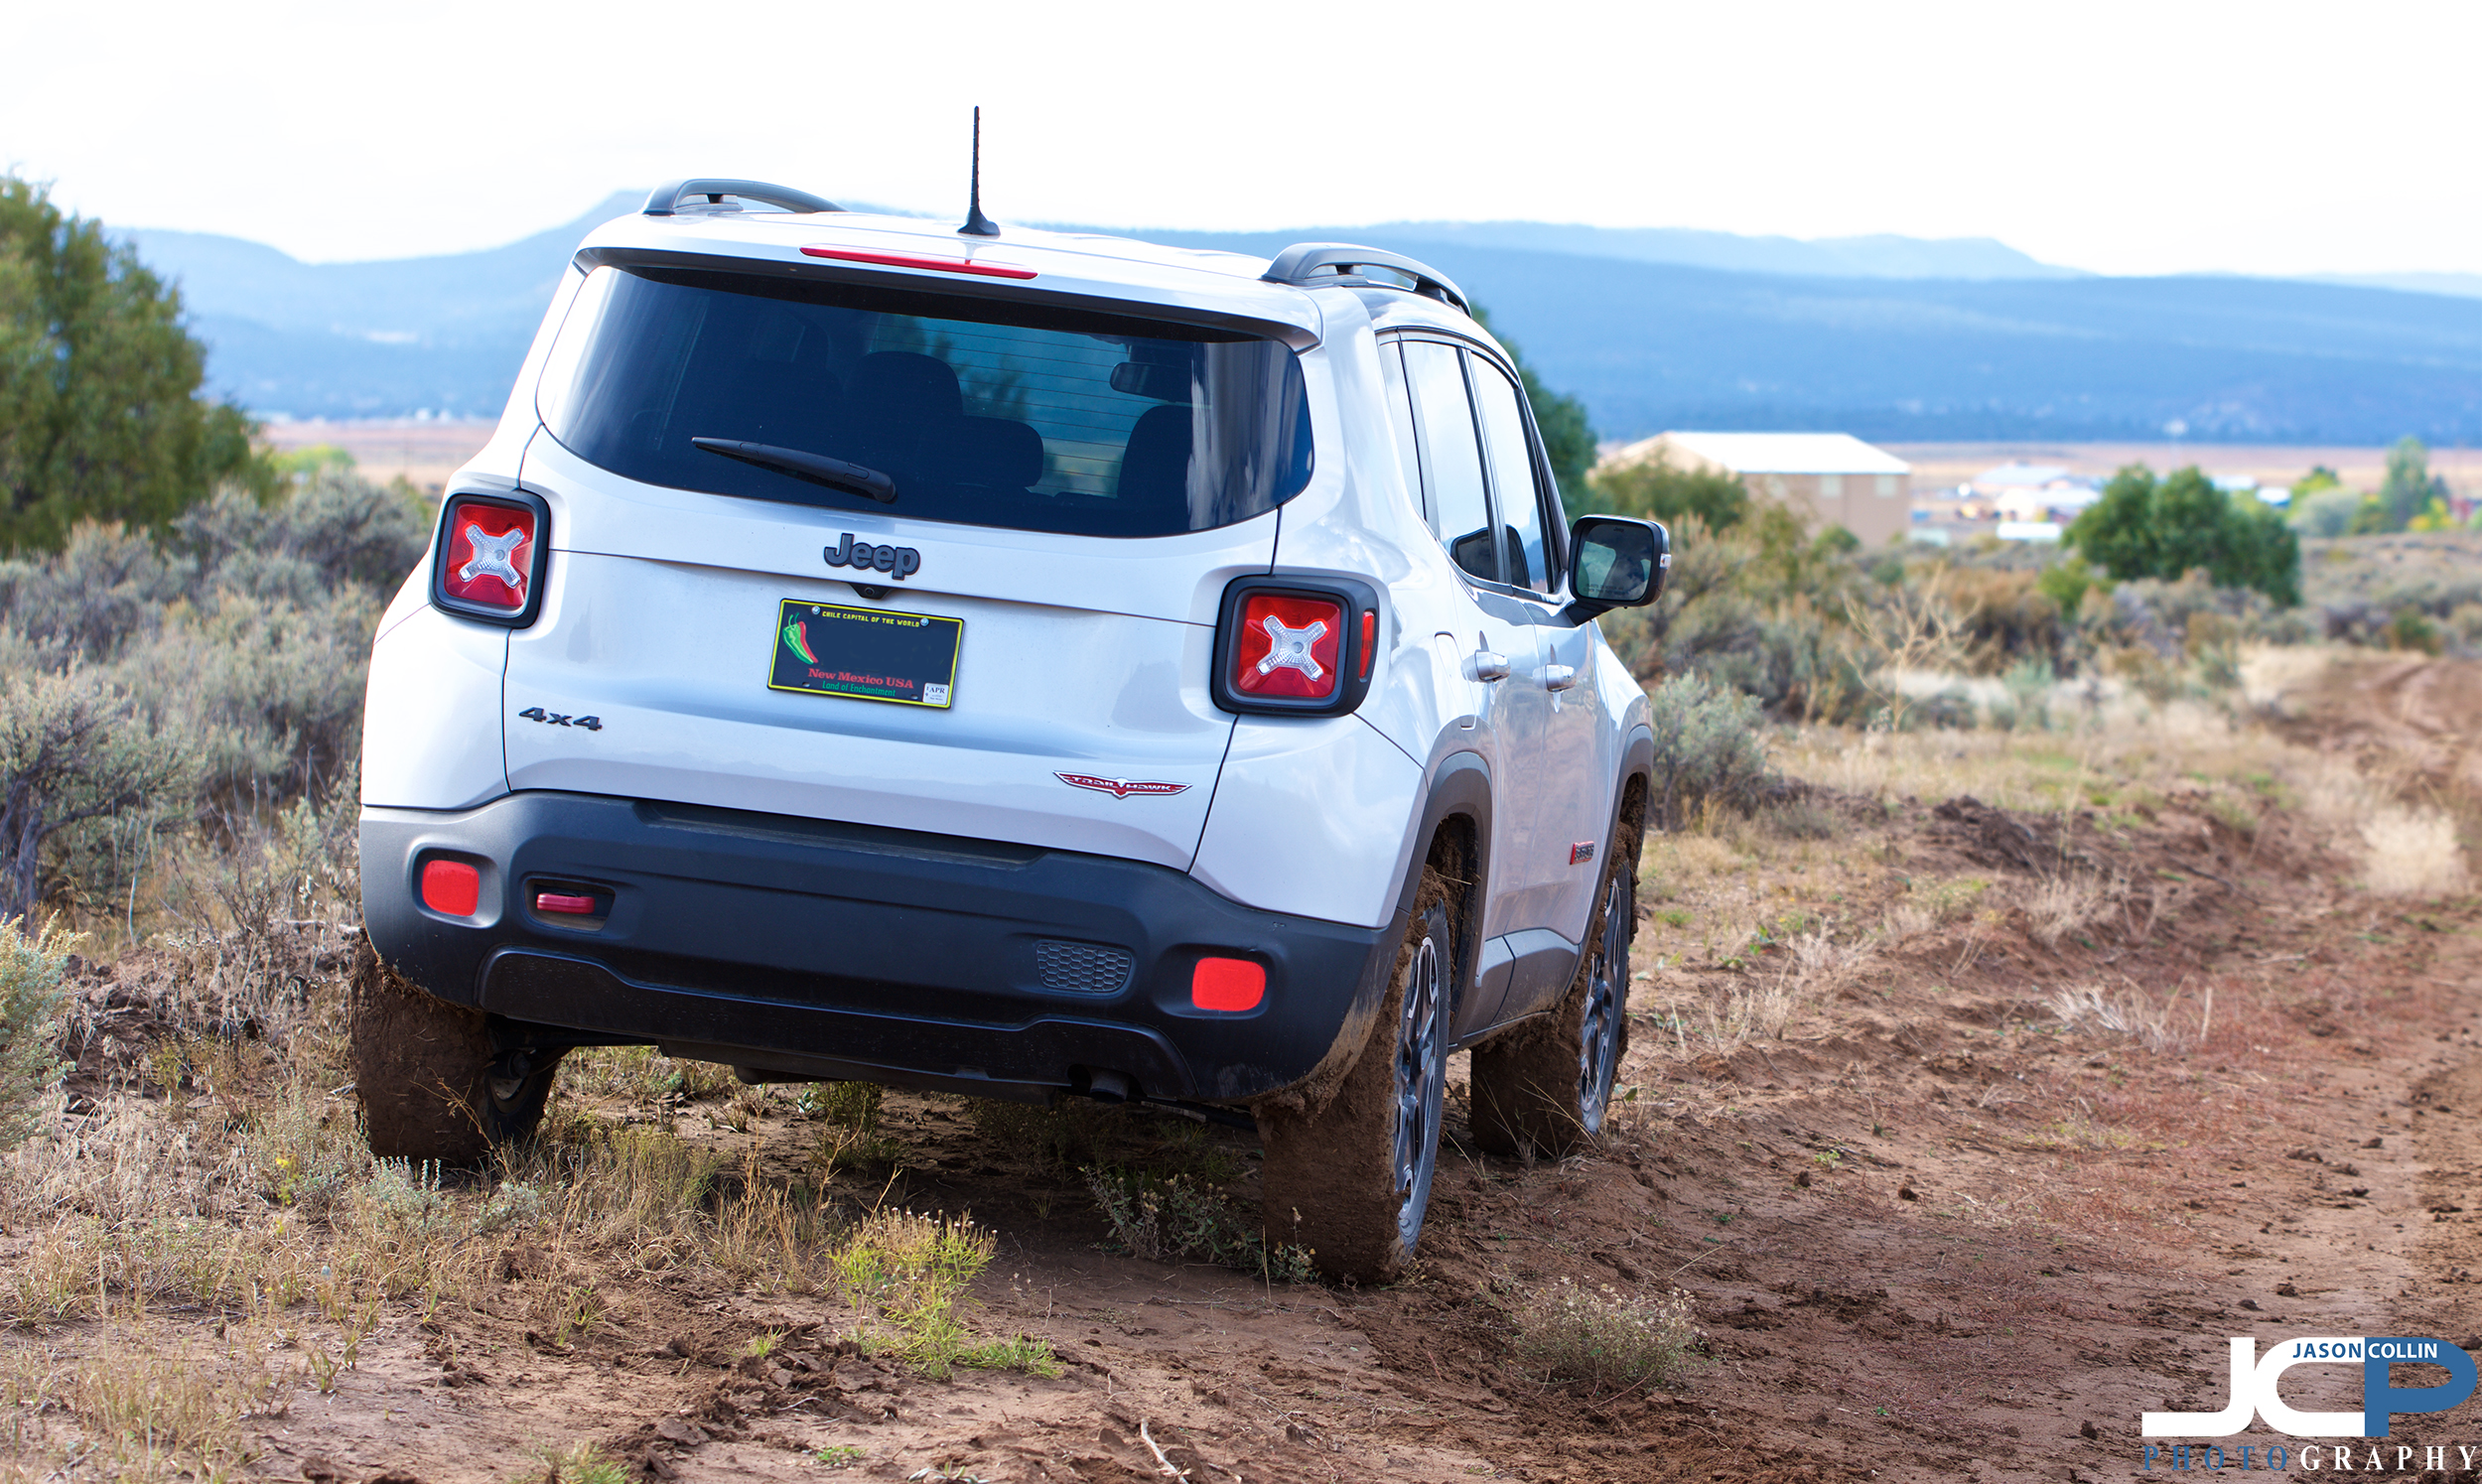 No getting stuck in the mud for the Trailhawk!